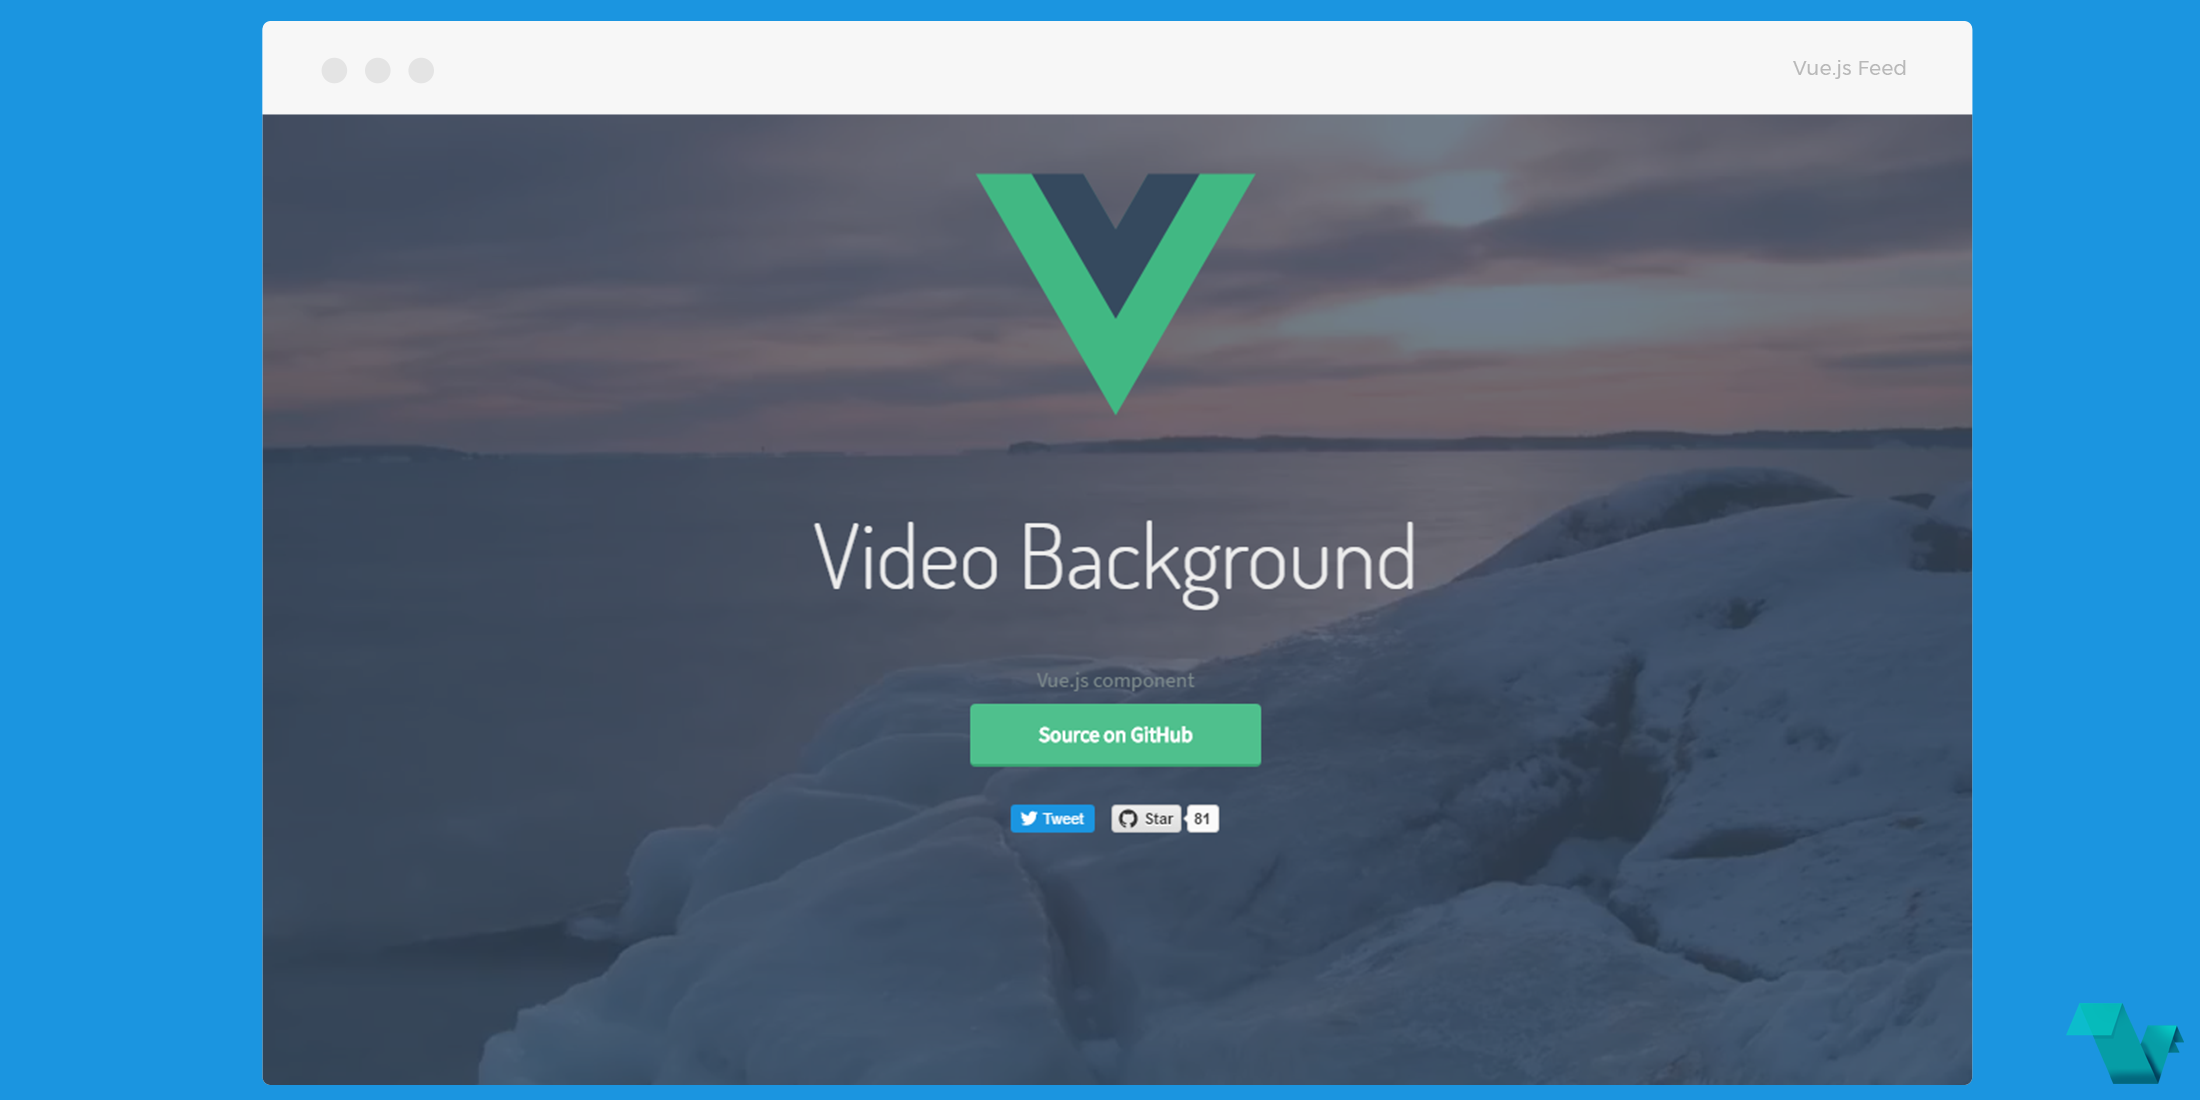 Video Background component for Vue js - Vue js Feed